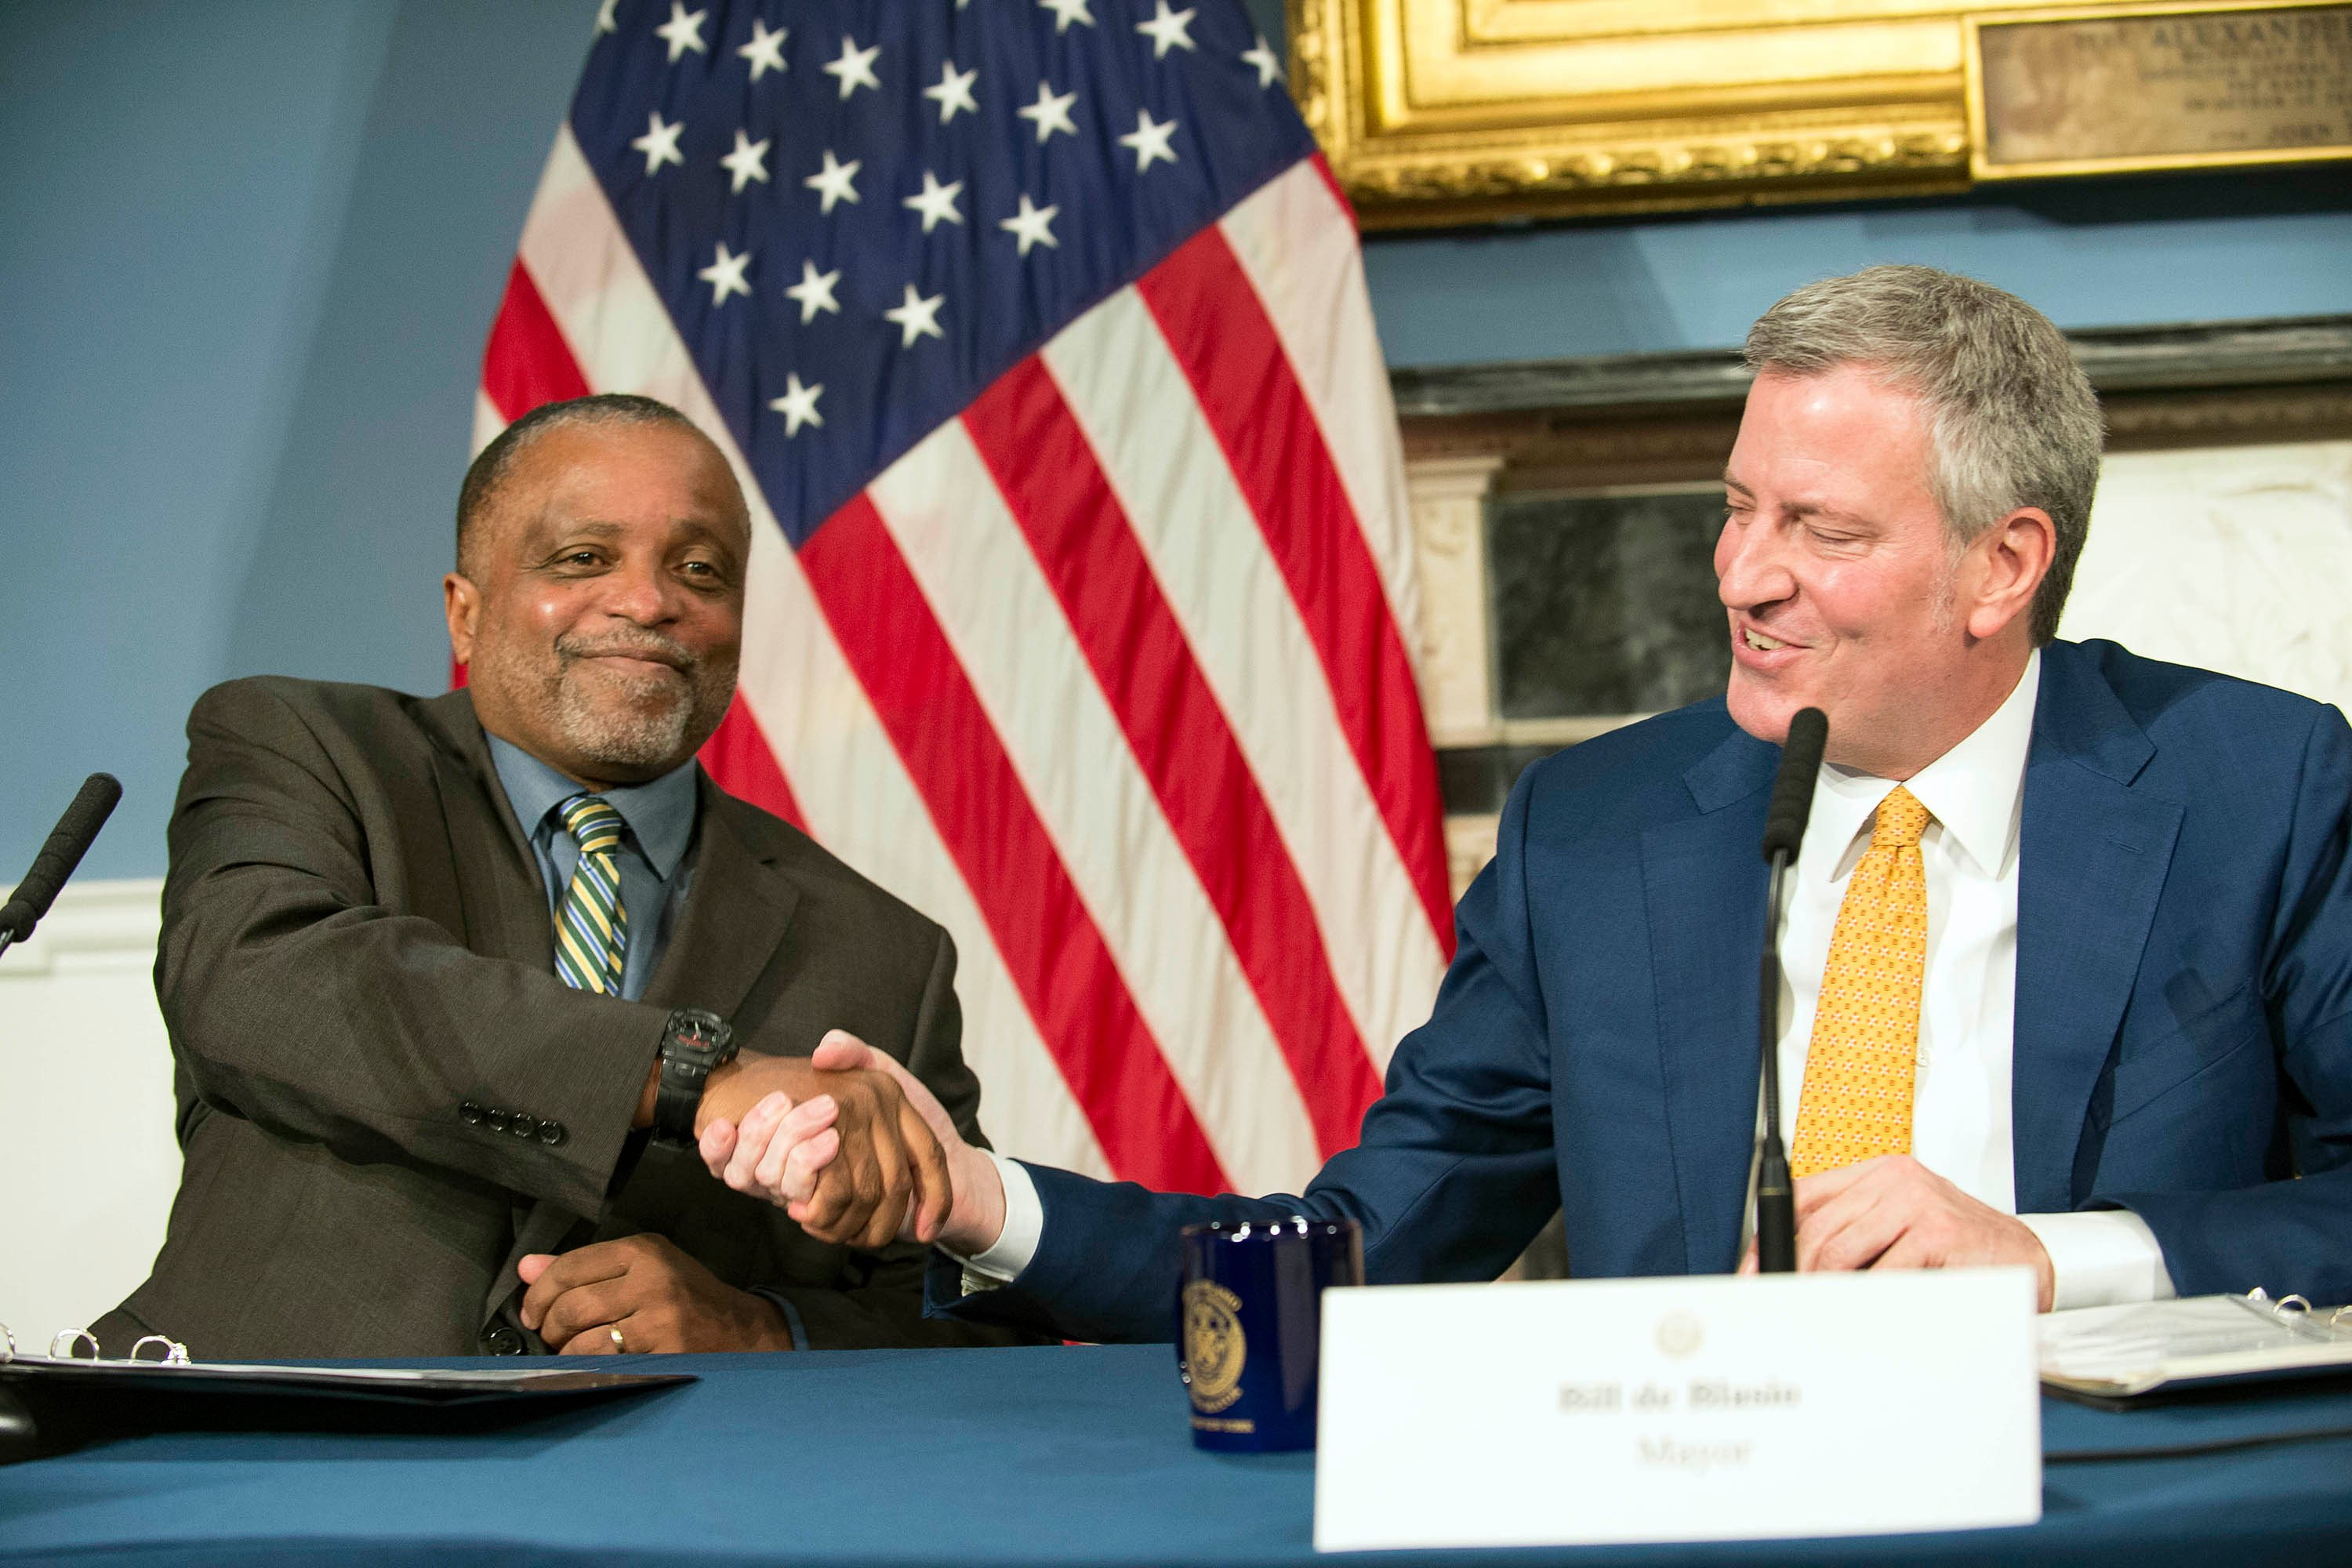 De Blasio appoints MIT professor as deputy mayor